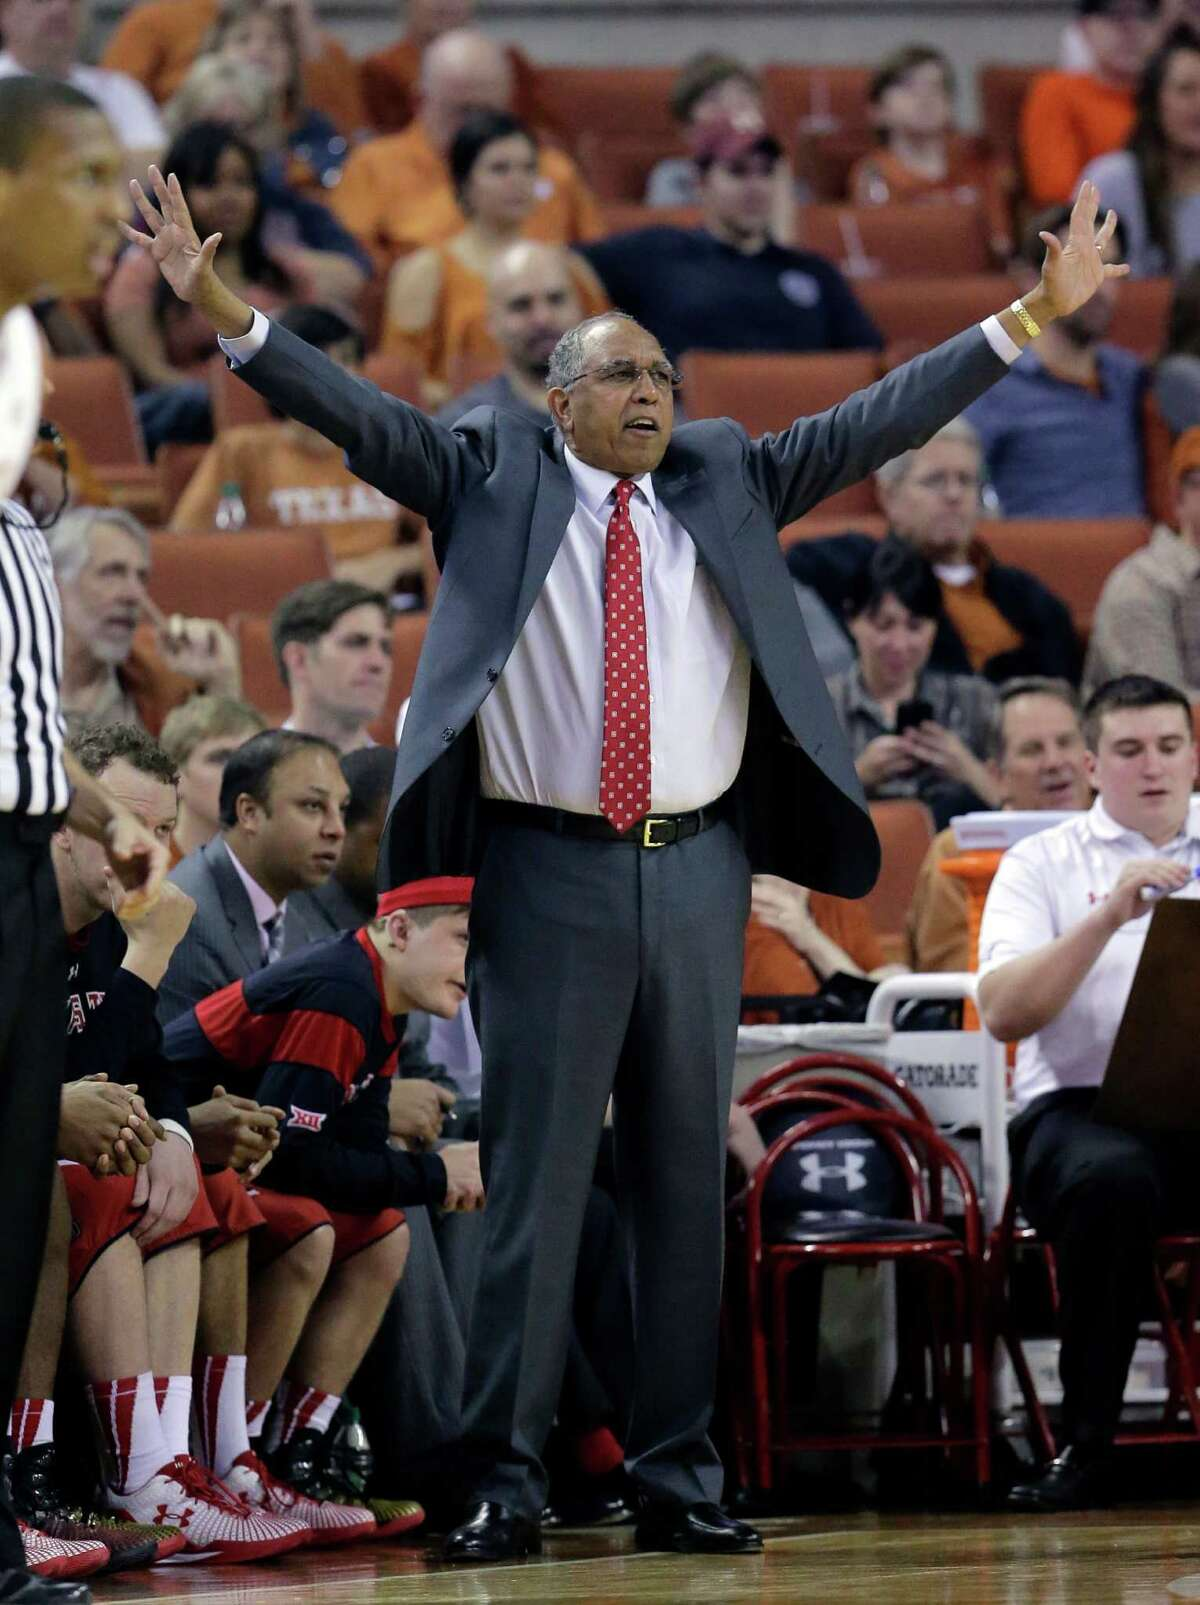 Texas Tech coach Tubby Smith calls to his players during the first half of an NCAA college basketball game against Texas, Saturday, Feb. 14, 2015, in Austin, Texas. (AP Photo/Eric Gay)